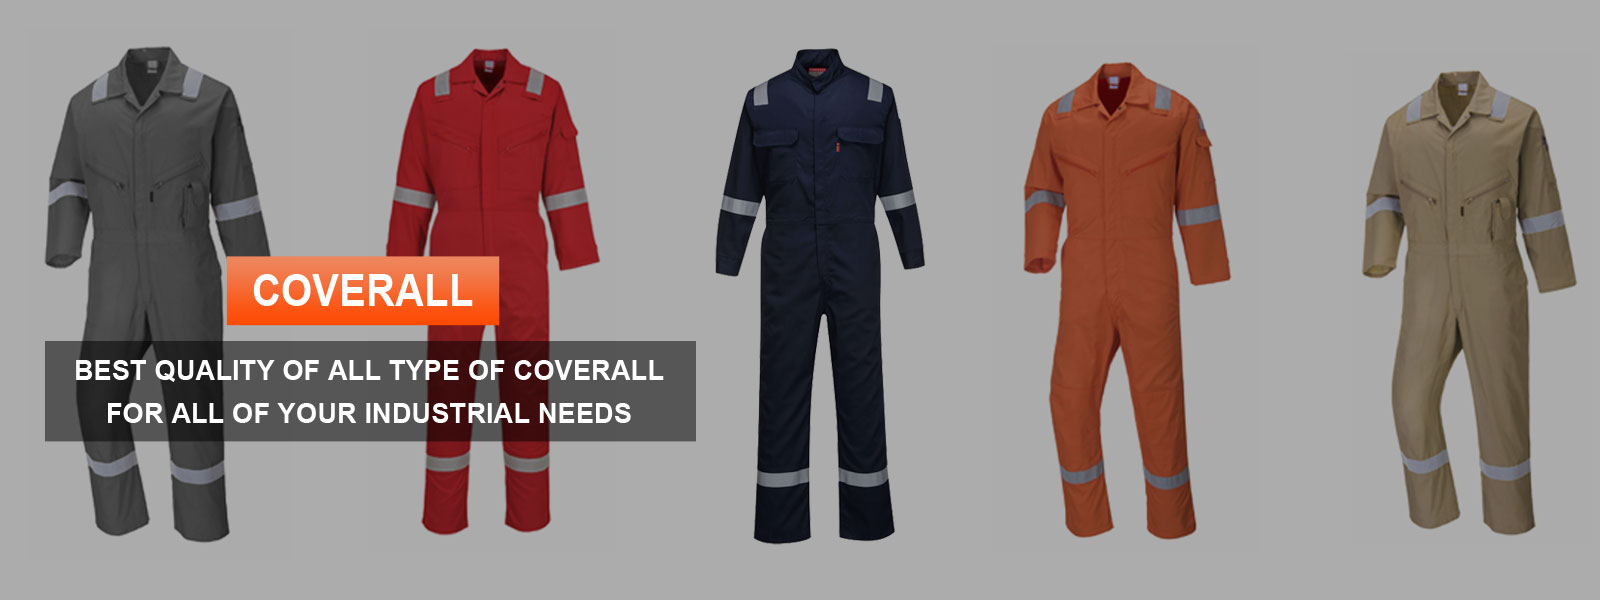 Coverall Manufacturers in Belize